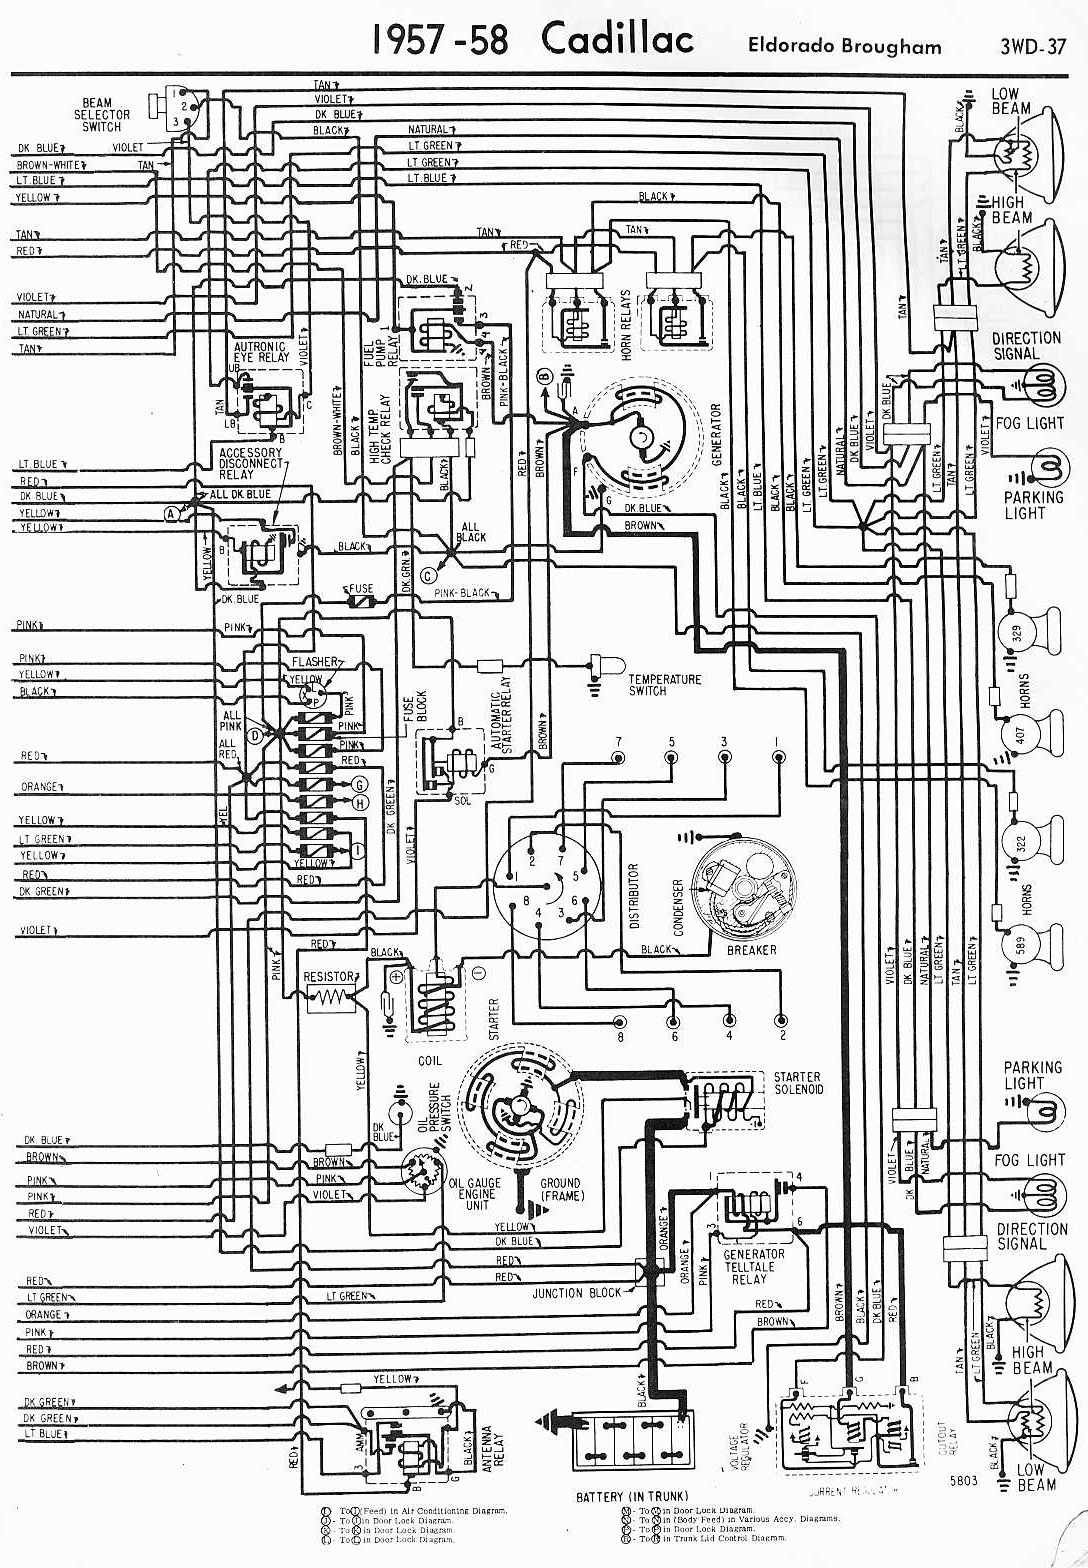 95 Cadillac Fleetwood Brougham Fuse Panel Diagram Opinions About 1975 Gm Box Wiring Also 1995 On Rh Vsetop Co 2000